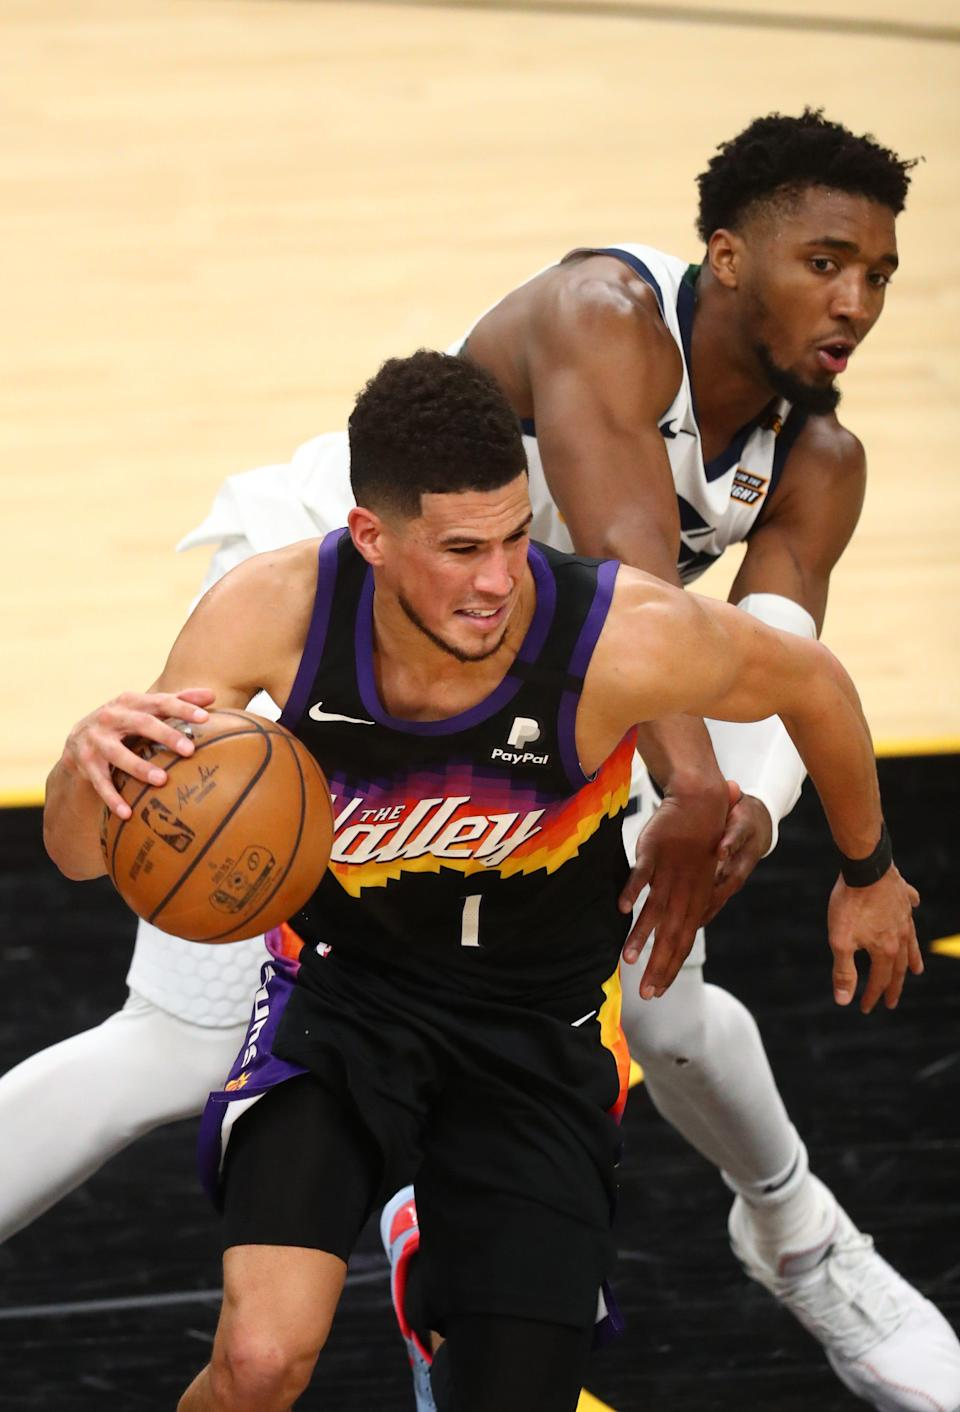 Is Devin Booker (1) and the Suns prepared to make a serious run at an NBA title? Or is Donovan Mitchell and the Jazz a better bet as a contender?